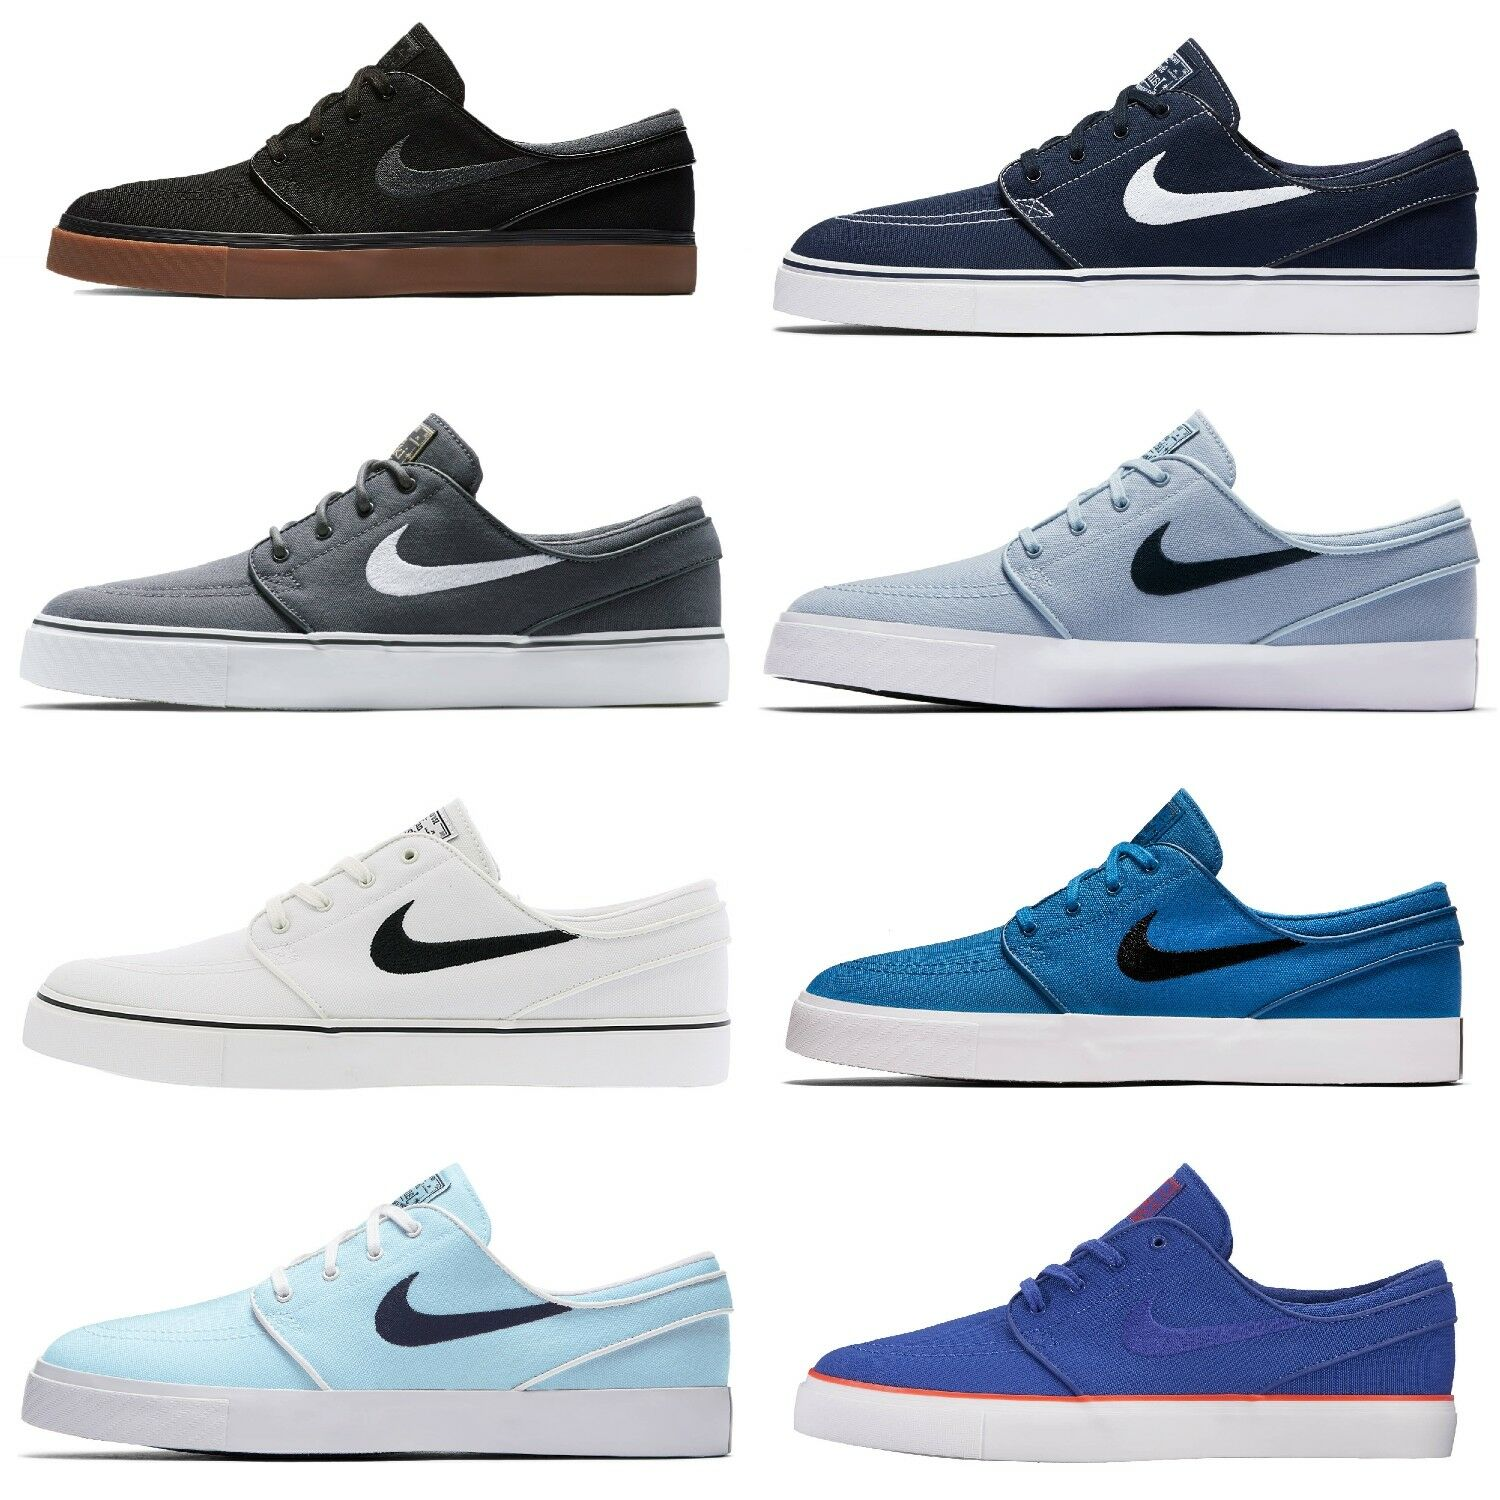 NIKE ZOOM STEFAN JANOSKI CANVAS SHOES SKATE SHOE TRAINERS Textile best-selling model of the brand